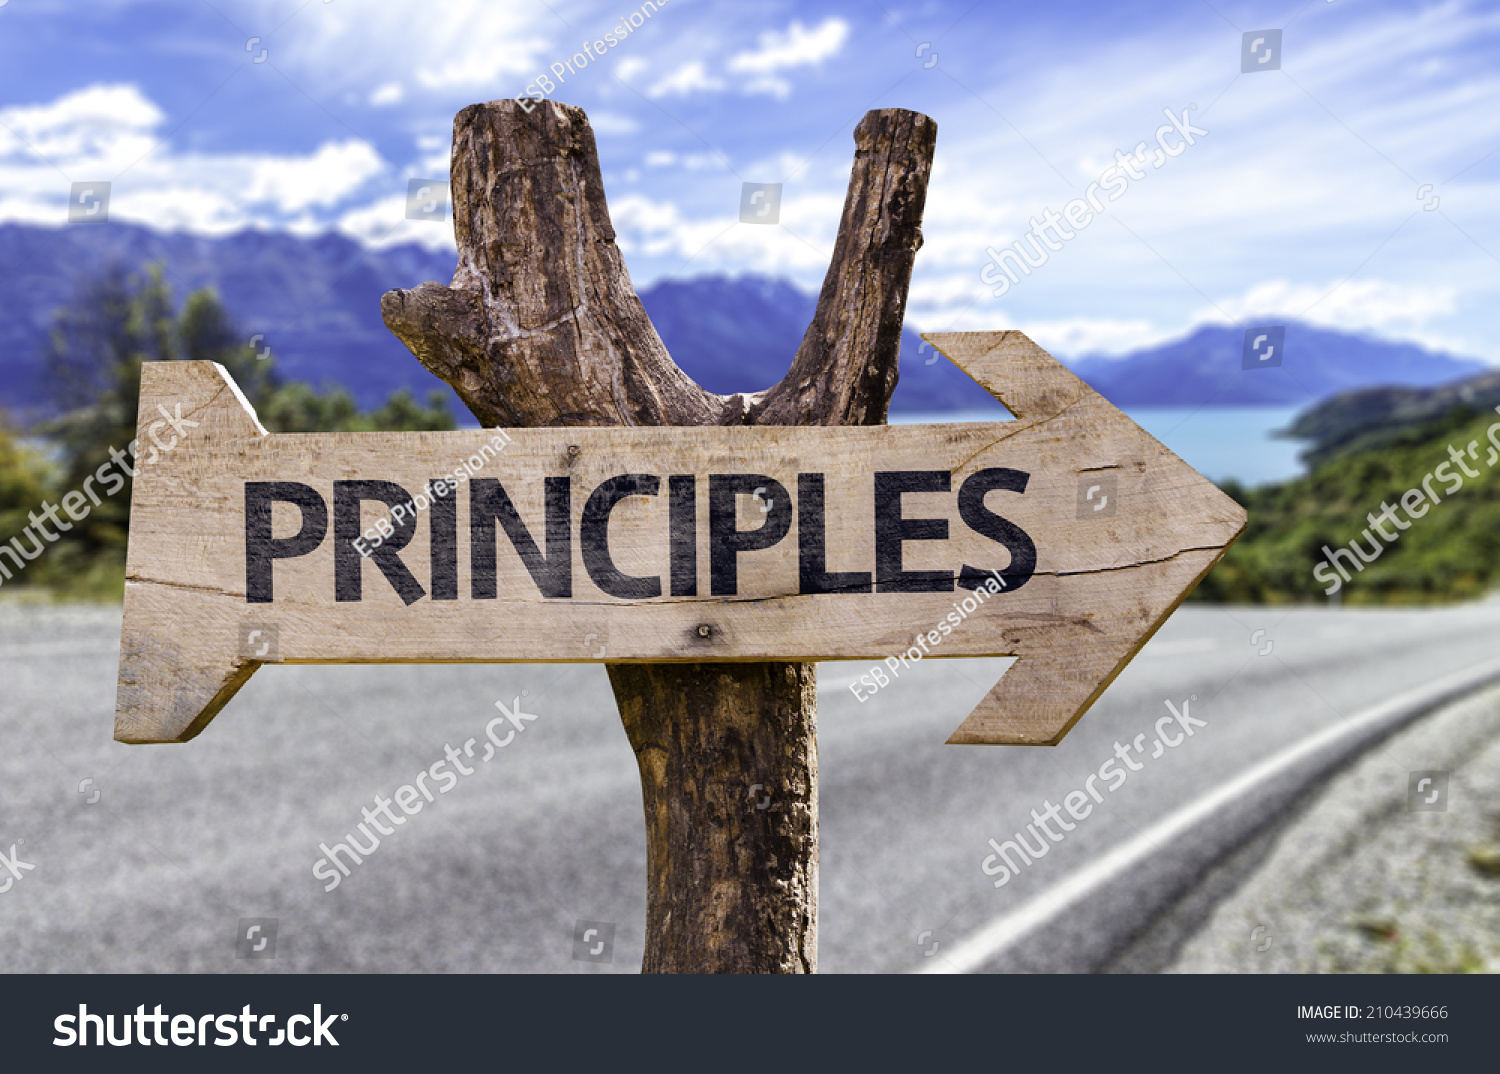 Principles Wooden Sign Highway On Background Stock Photo. Carpet Cleaning Chandler Az Umkc Social Work. Retail Signage Software Paycheck Tax Deduction. Criminal Defense Lawyers Fort Lauderdale. Melrose Wakefield Oral Surgery. Redhat Cluster Documentation Fiat 2013 500. Second Home Mortgage Down Payment. Homeowners Insurance Umbrella Policy. Usf Dermatology Davis Island Server In Dmz